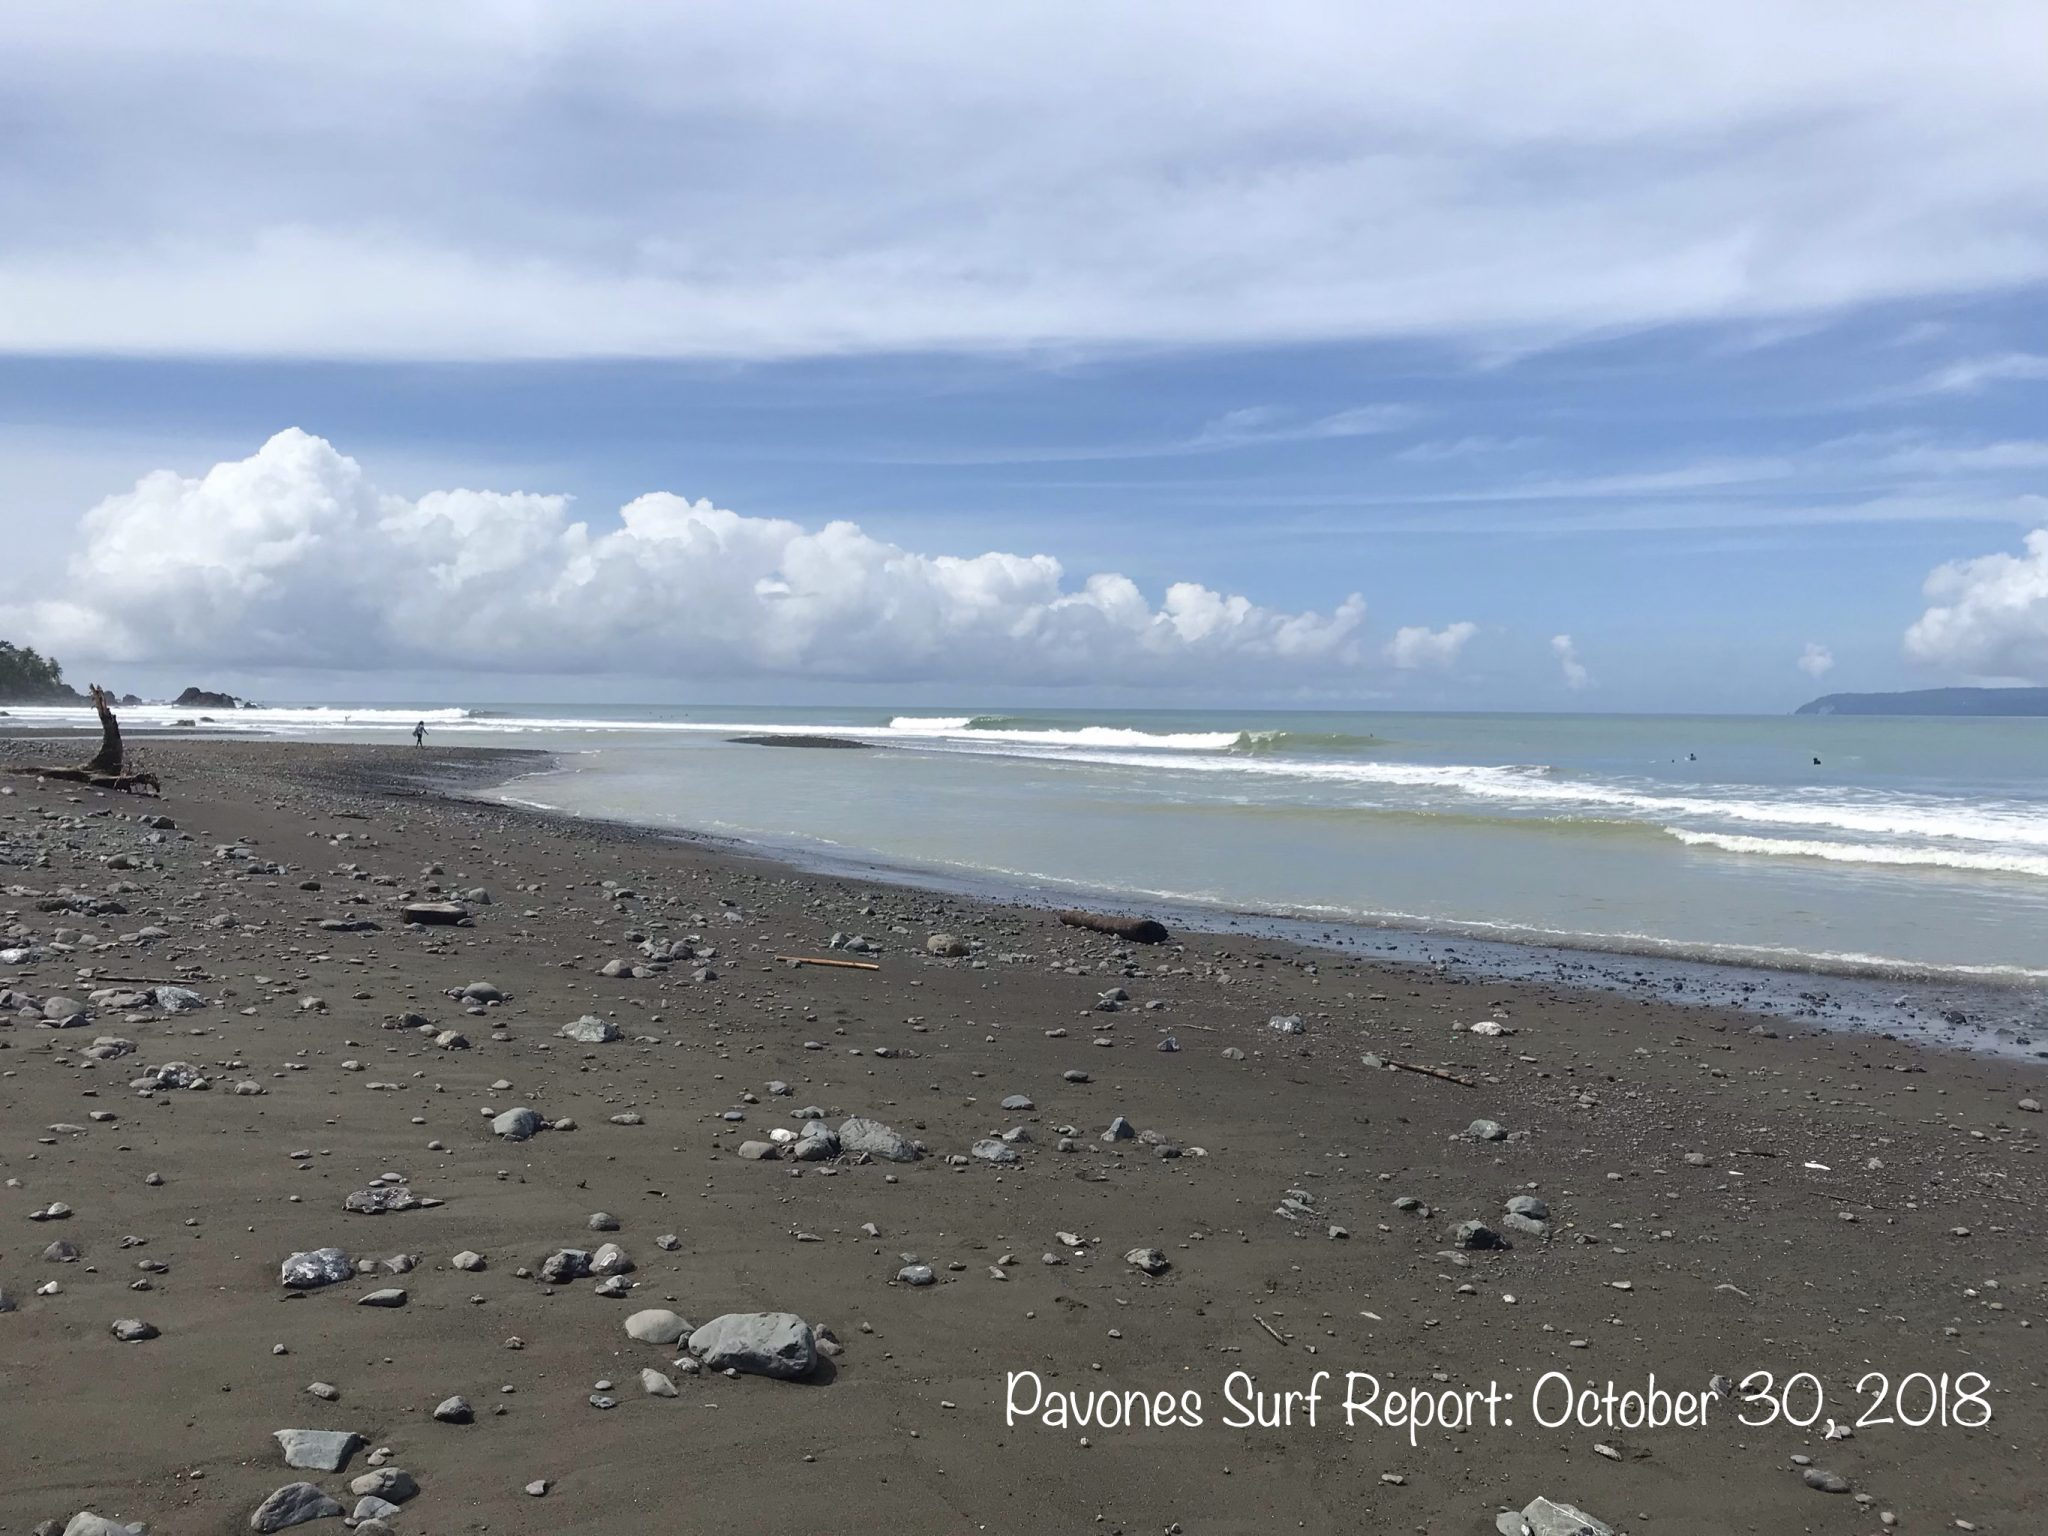 Pavones Surf Reports